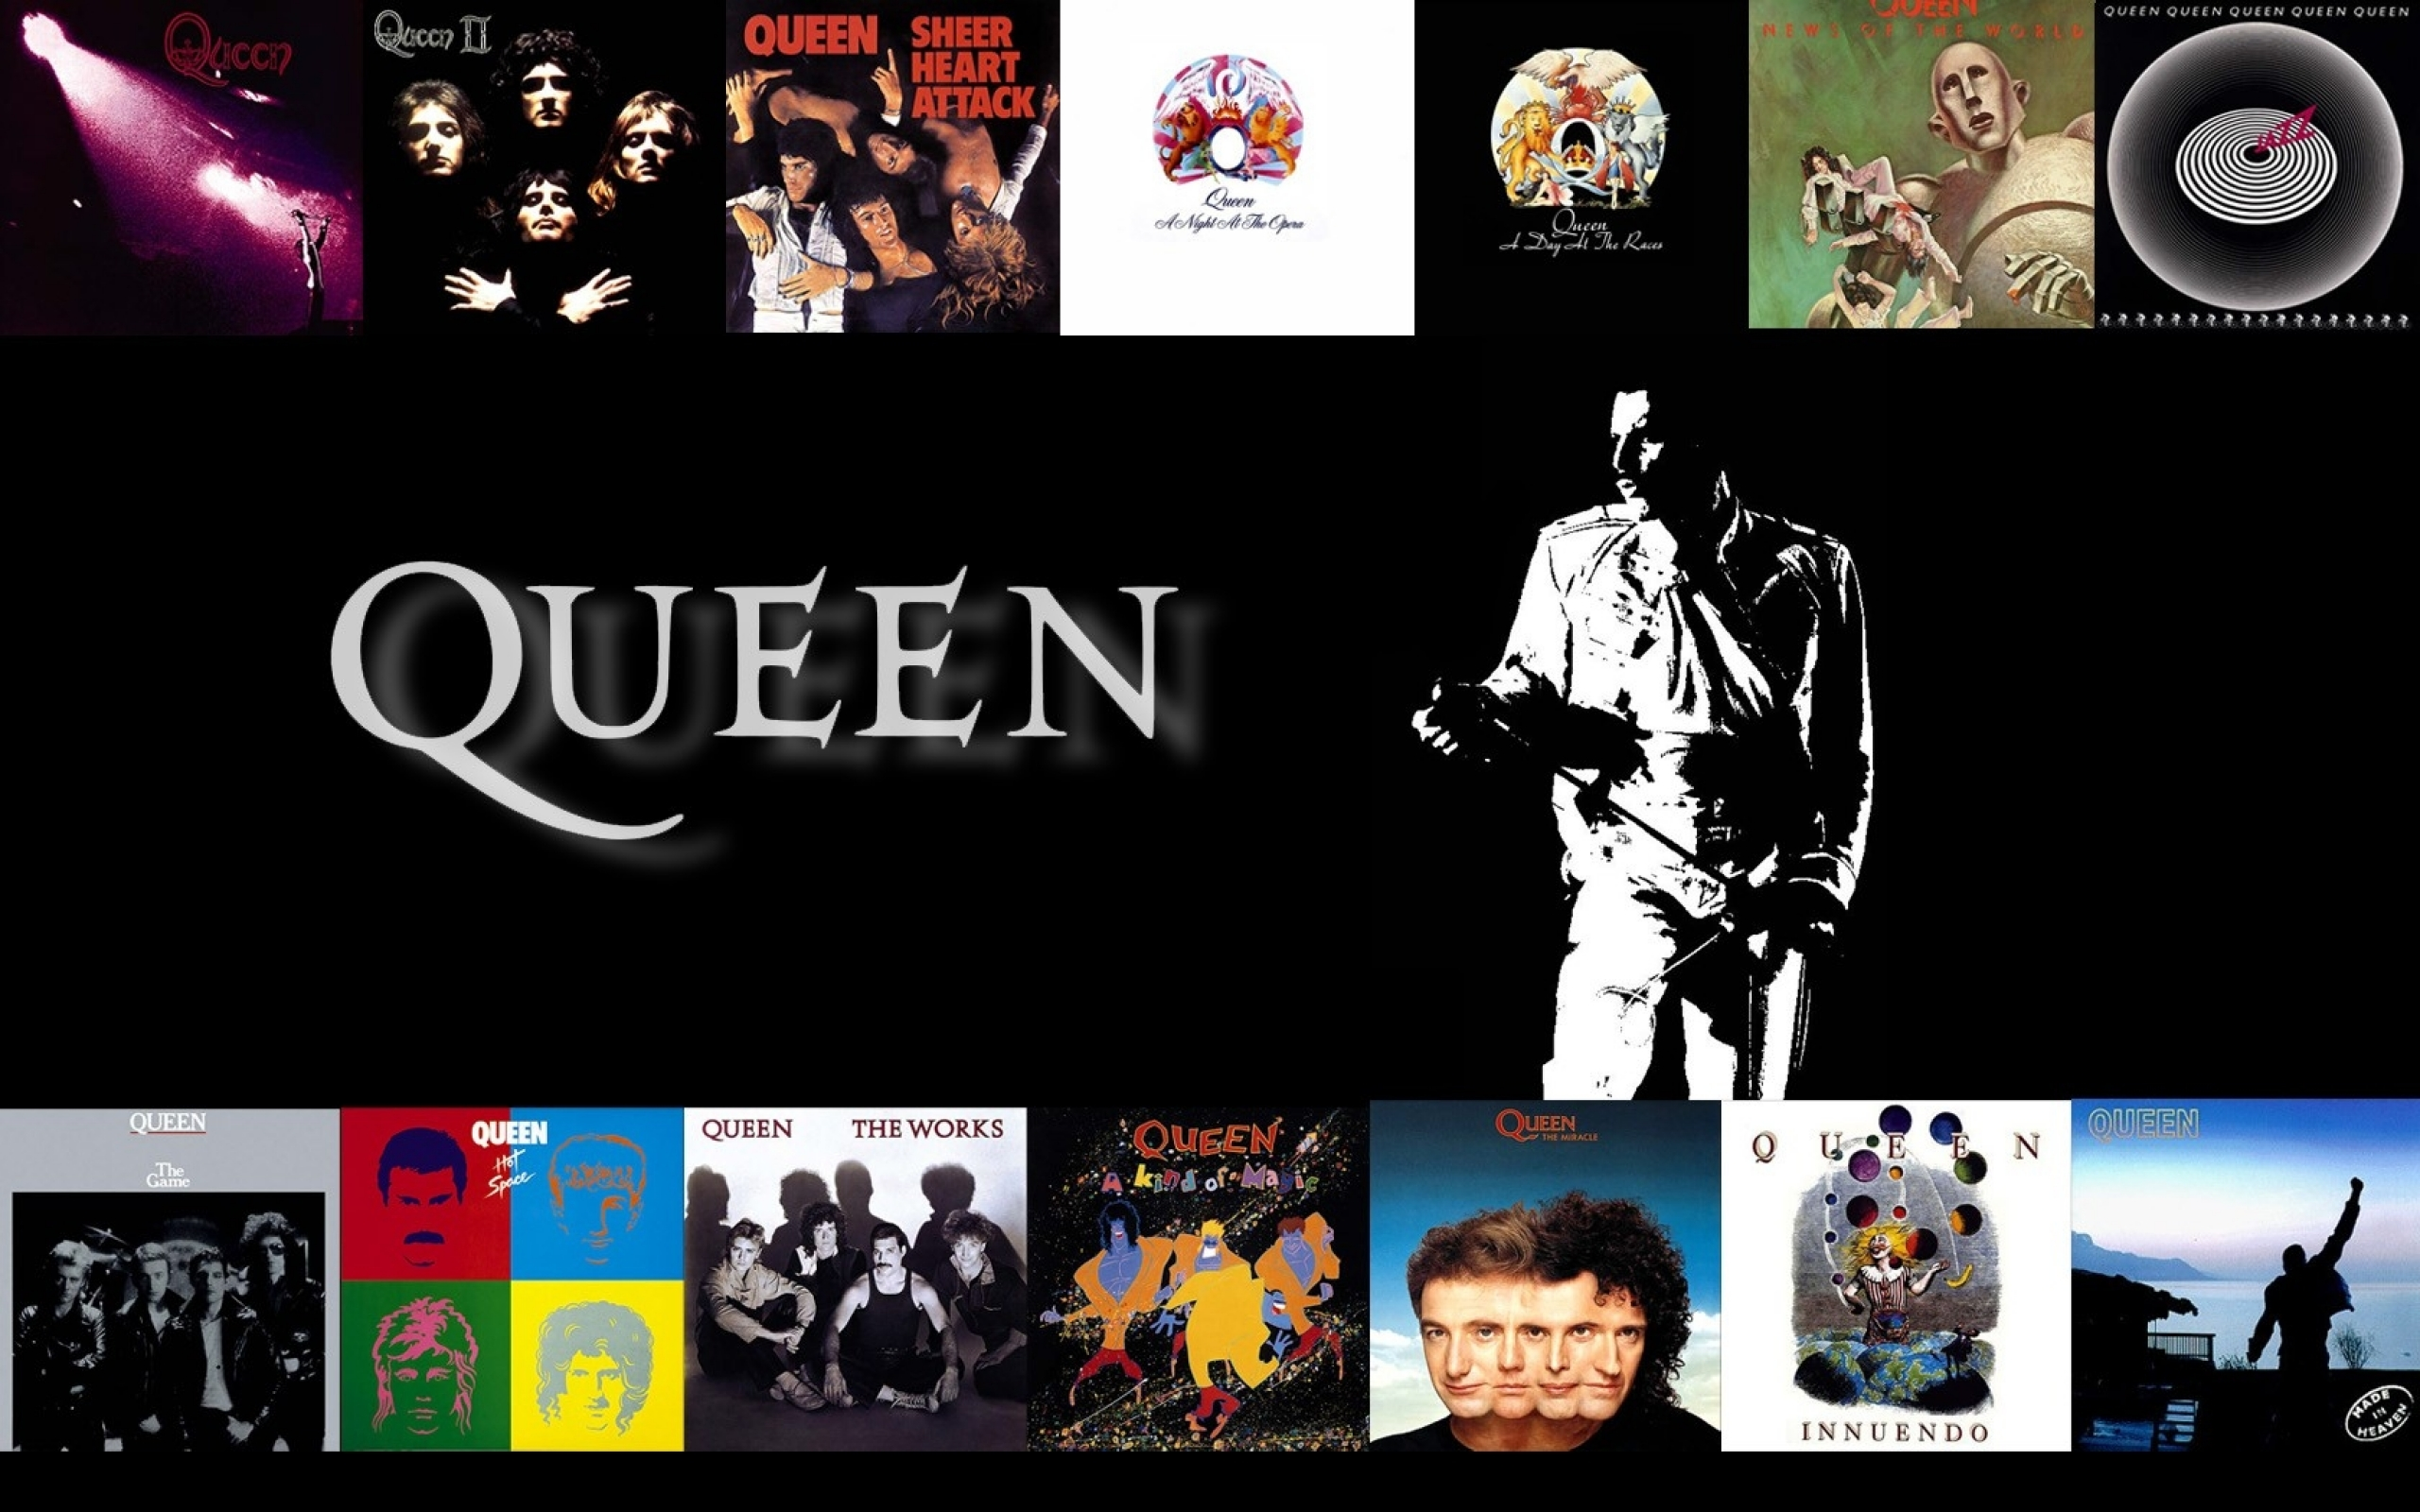 Free download mercury rock music queen music band album covers